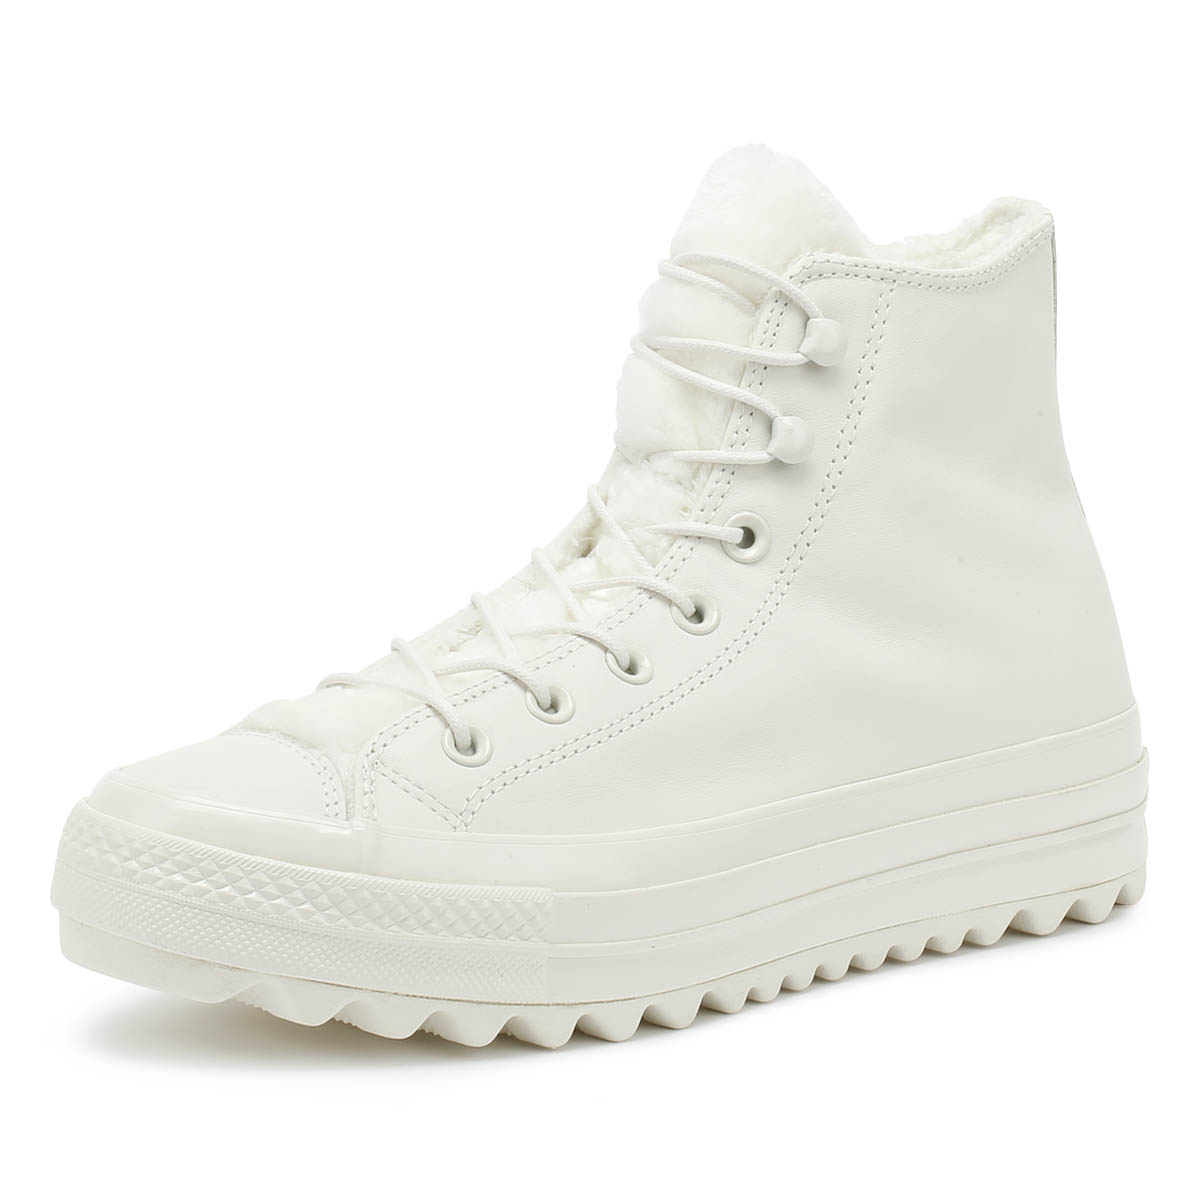 1293244b4c81 Details about Converse All Star Lift Ripple Womens White Hi Trainers Leather  Winter Shoes